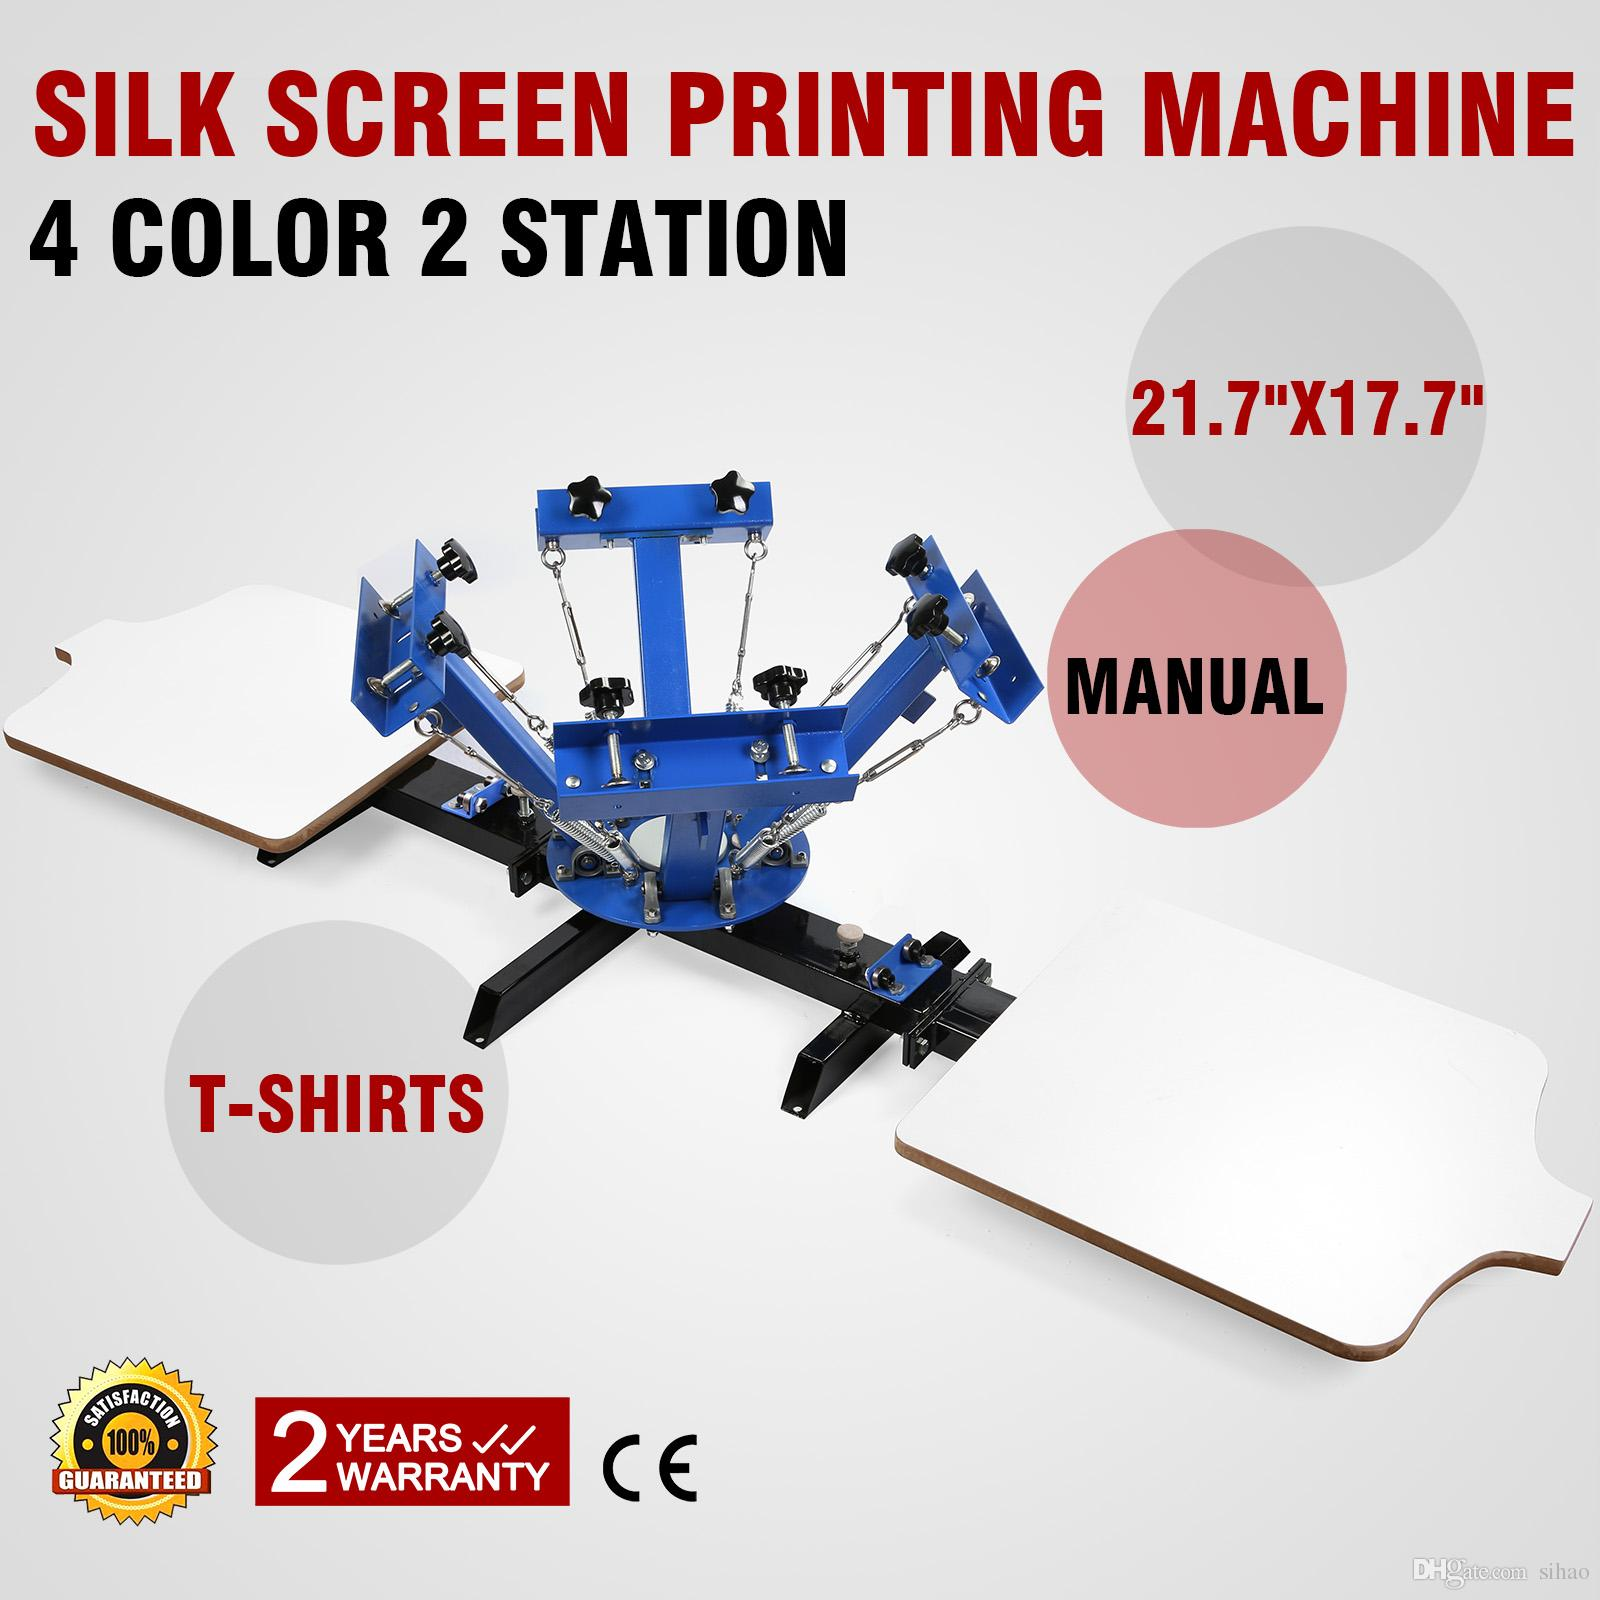 c549d87aadb4c 2 Station Silk Screen Printing Machine T Shirts Cap Carousel Manual Wood  Glass 110 220V Canada 2019 From Sihao